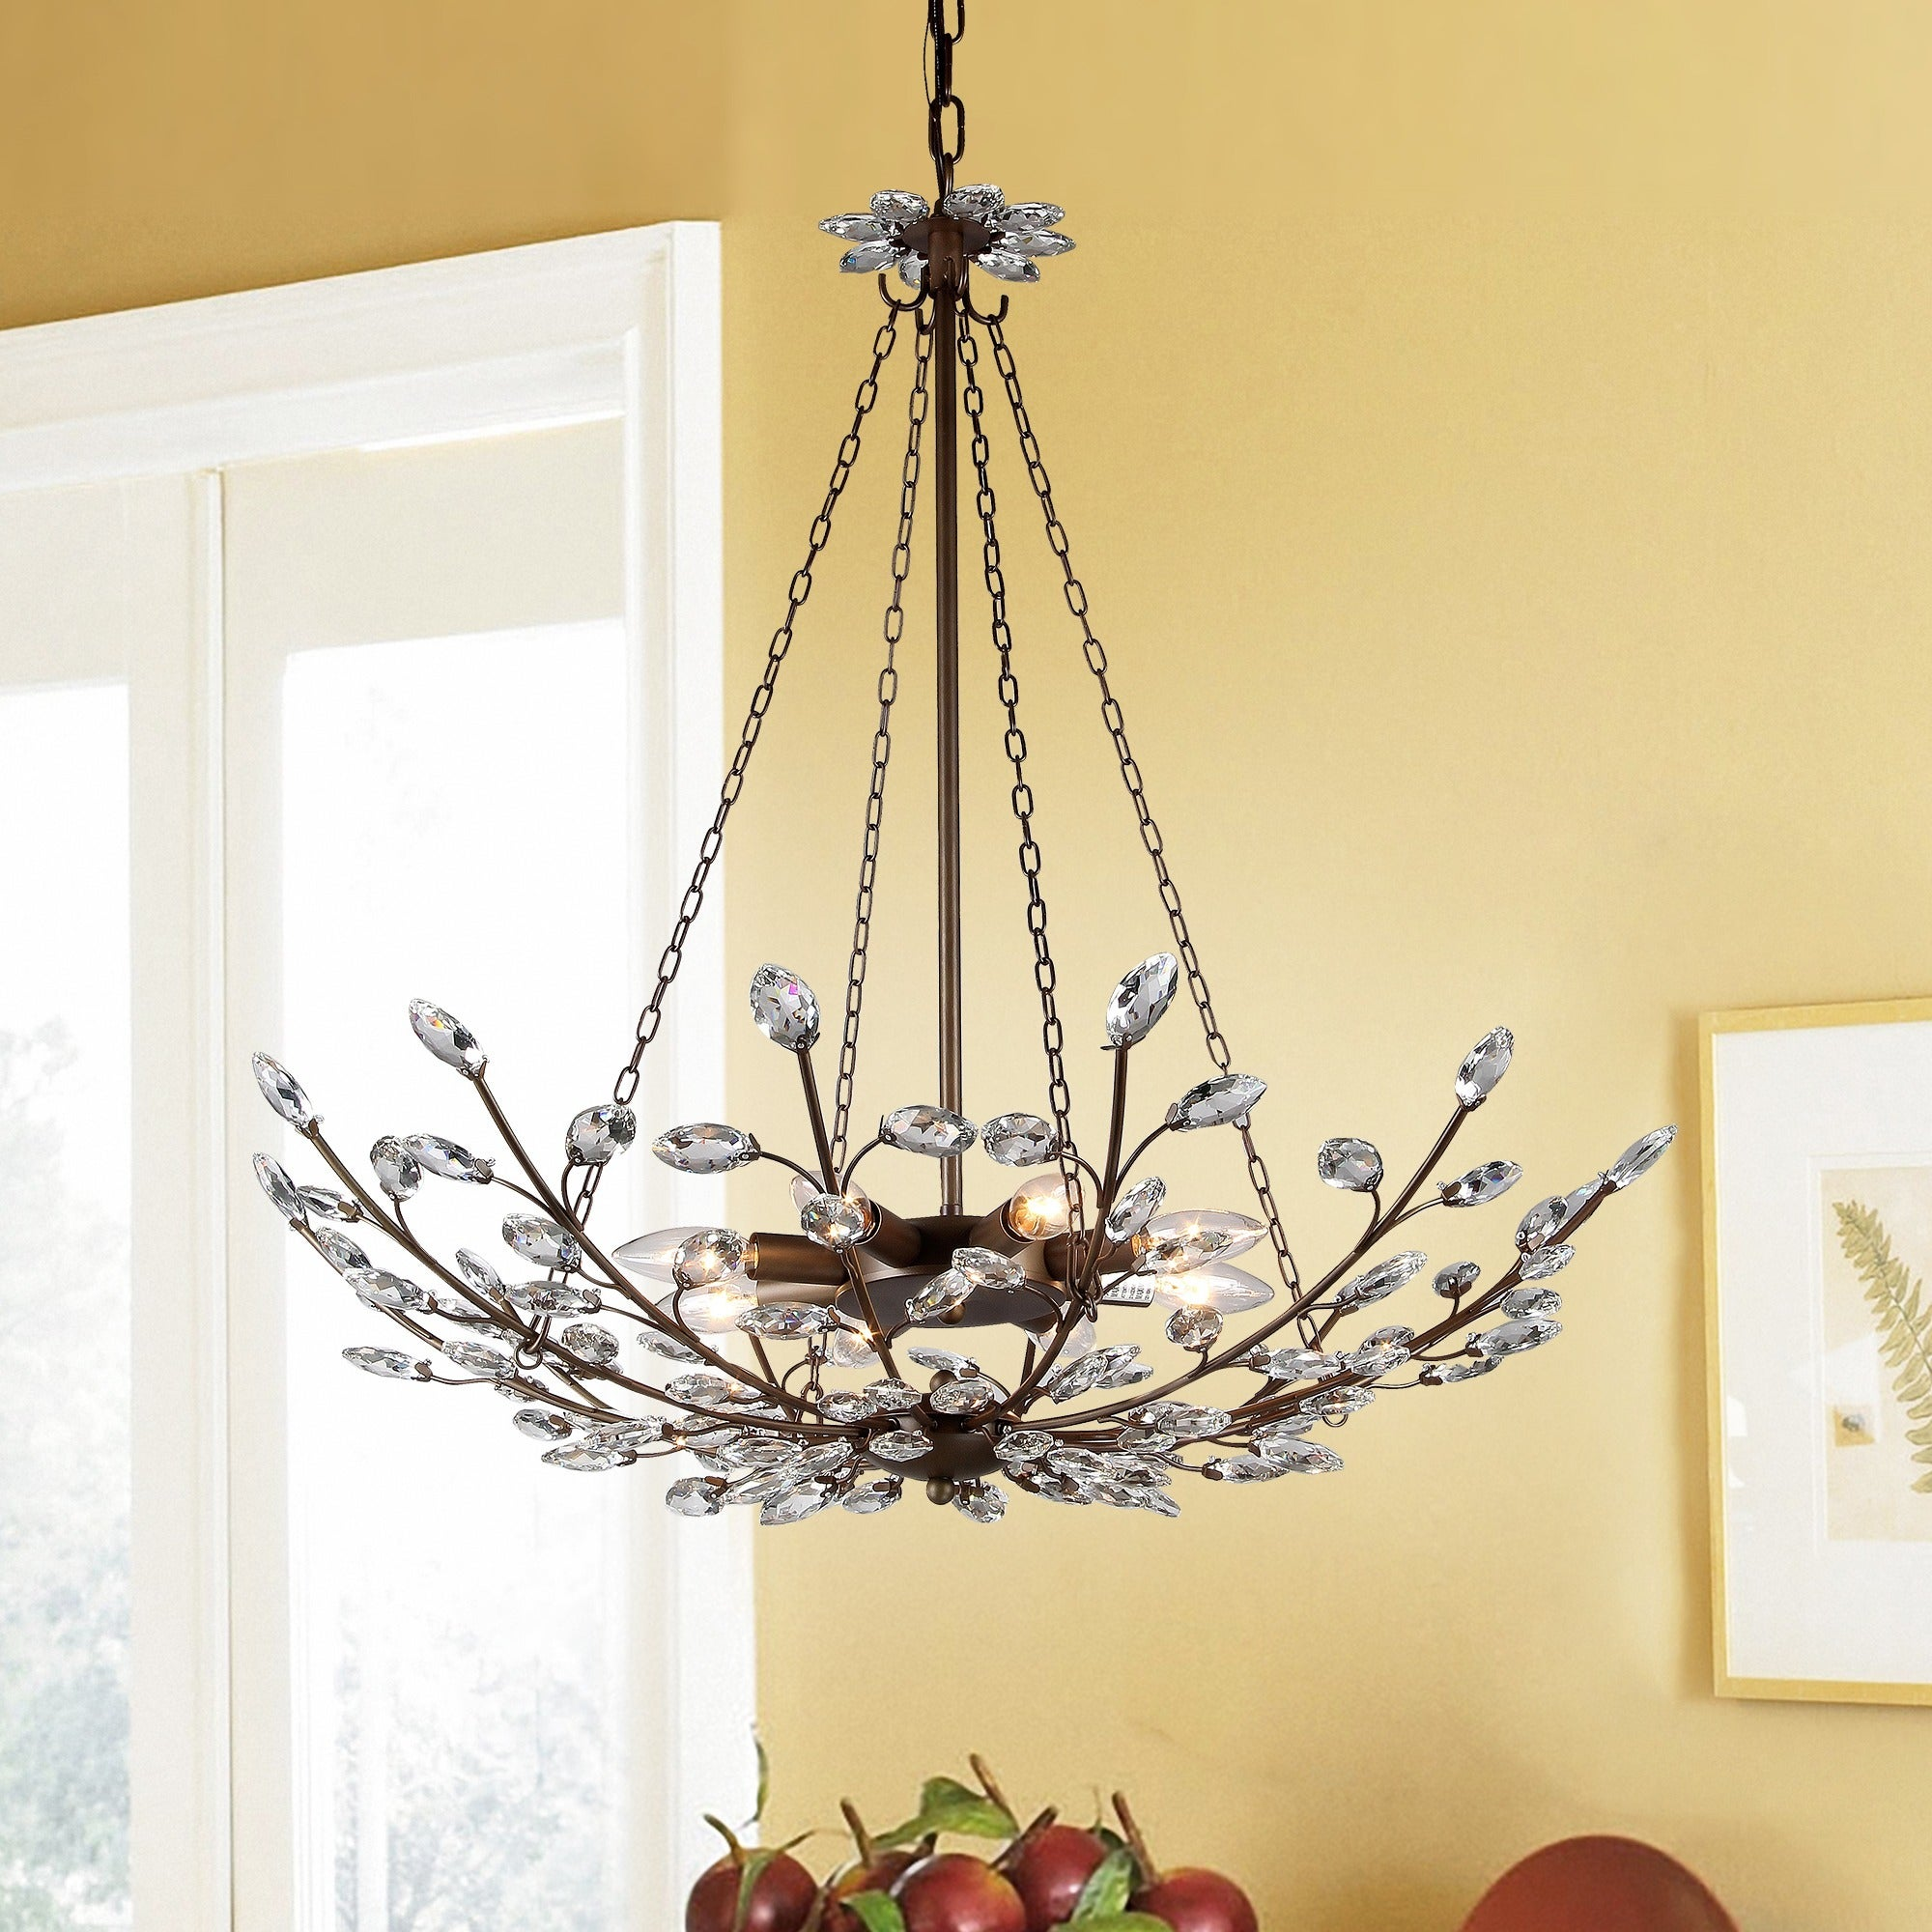 Addie 8 light crystal 30 inch antique bronze chandelier free addie 8 light crystal 30 inch antique bronze chandelier free shipping today overstock 18184894 arubaitofo Image collections